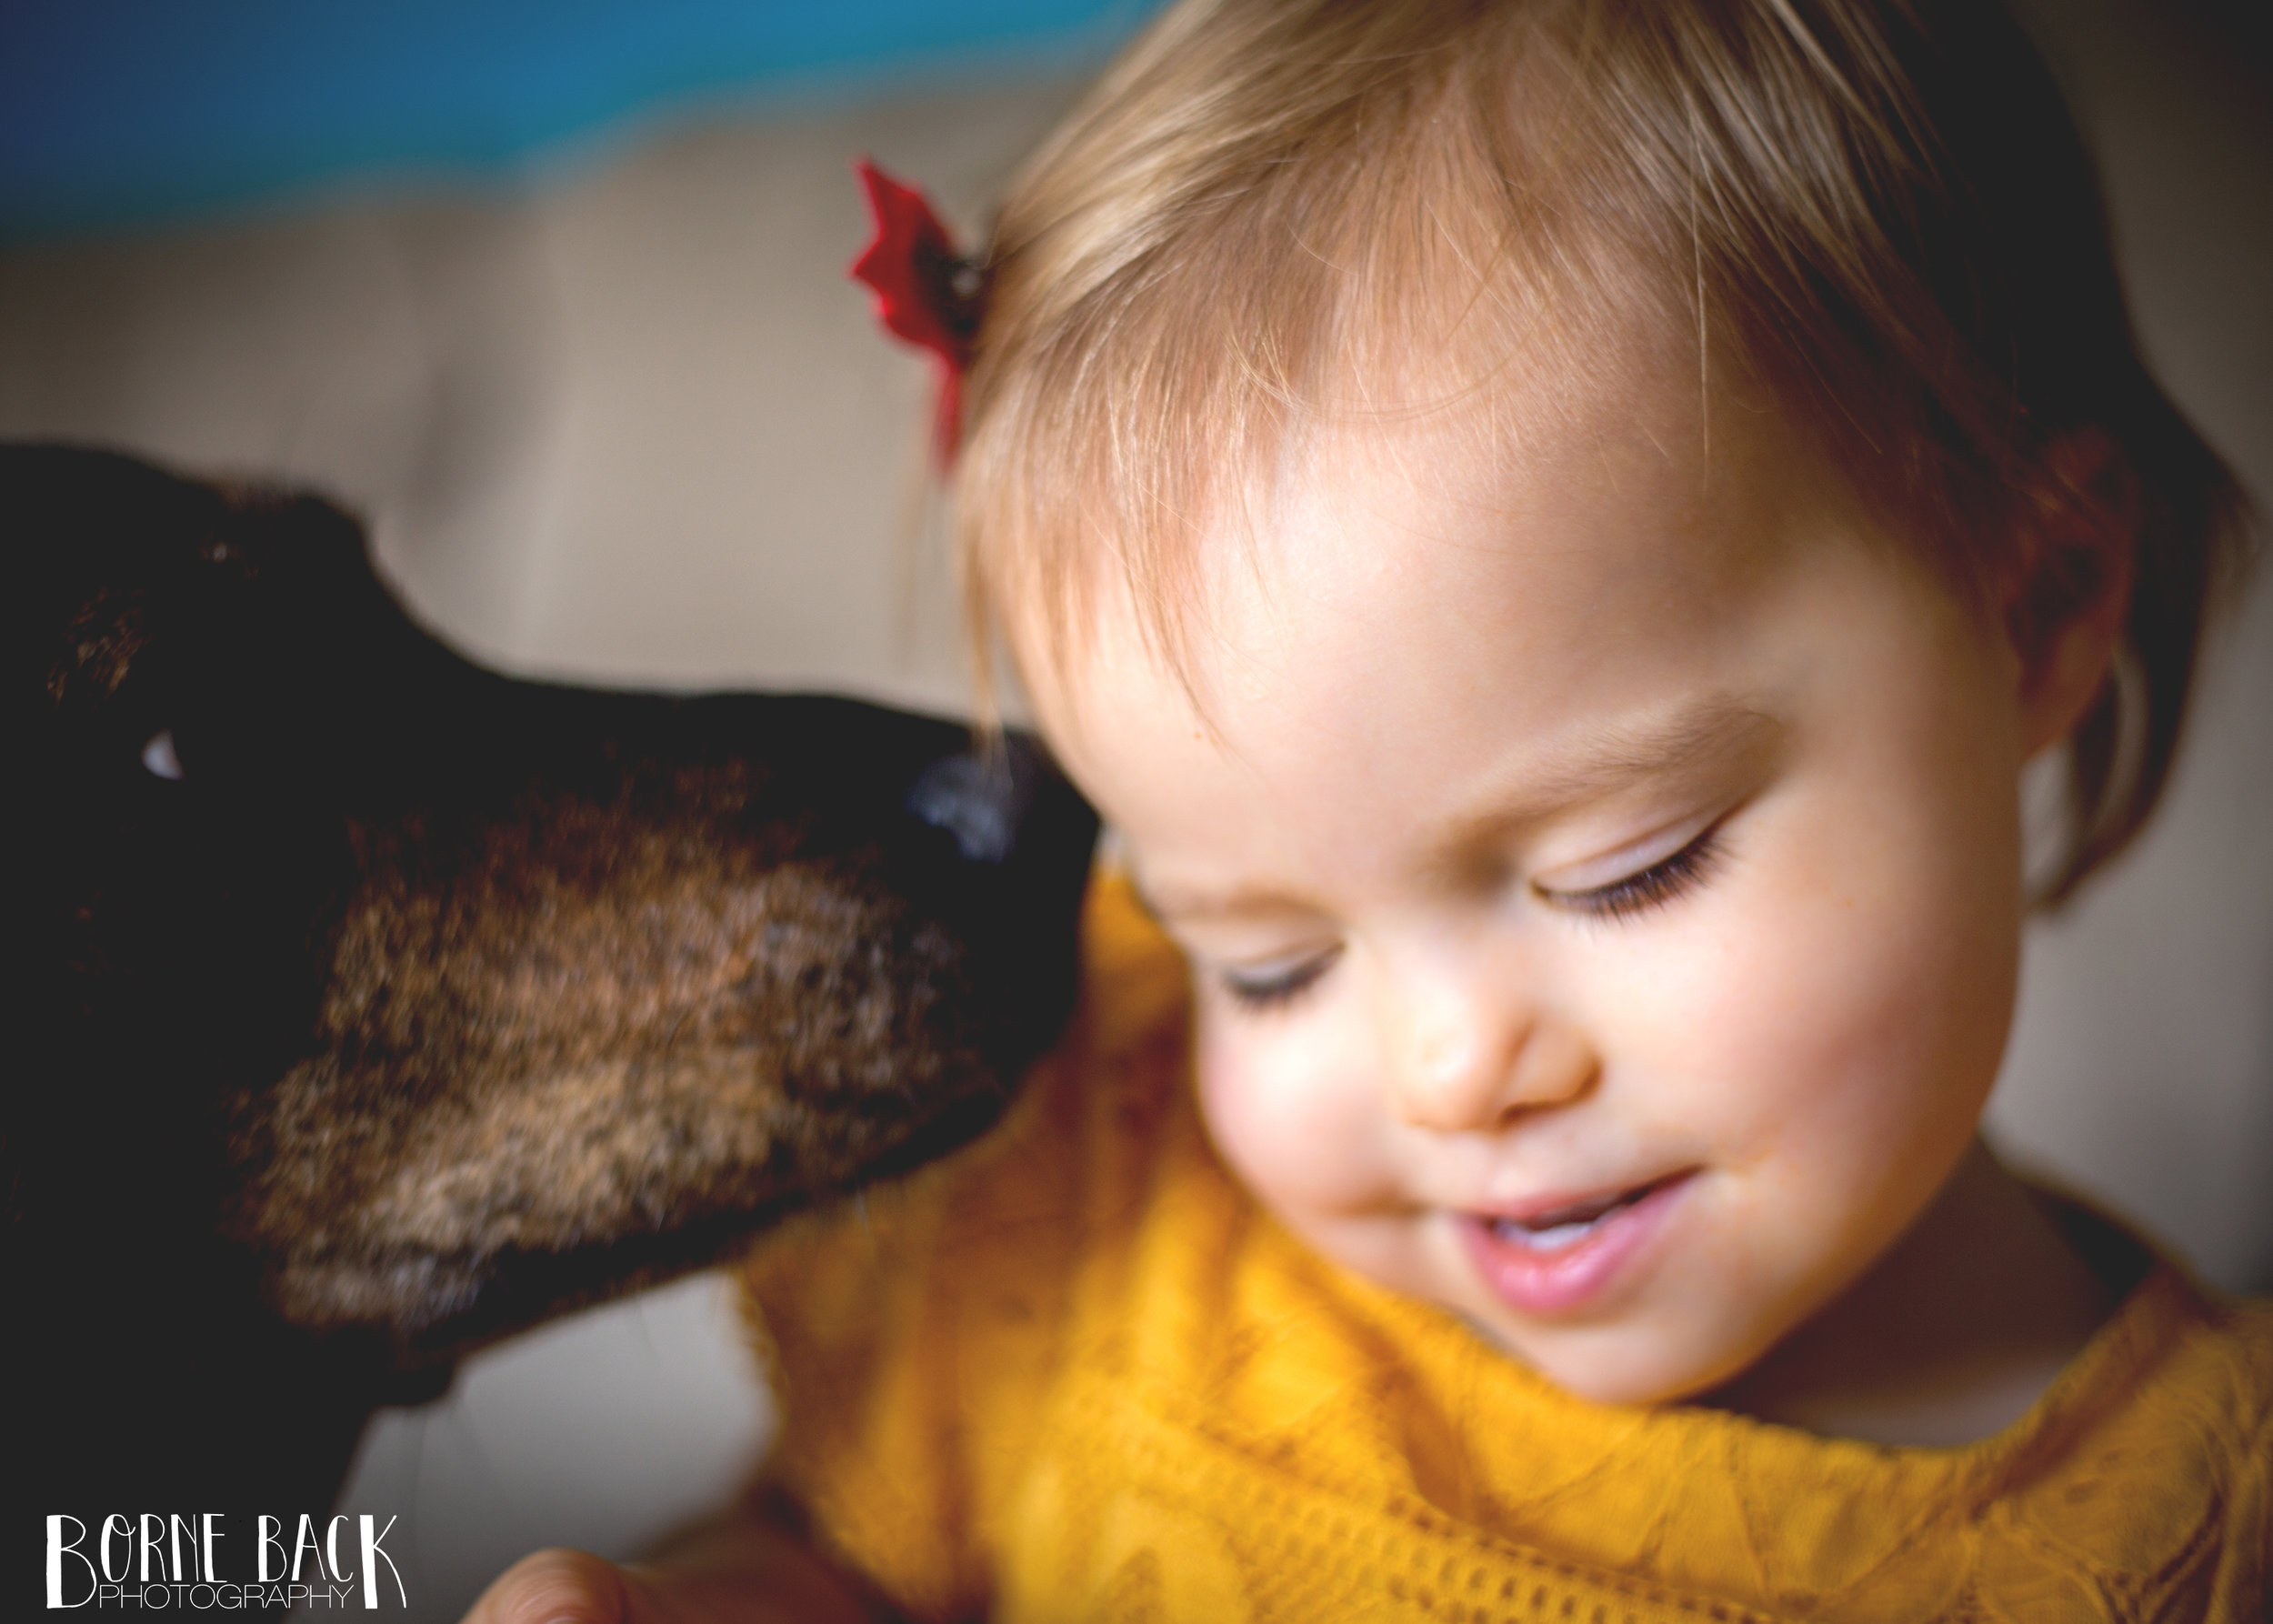 This started off as a portrait shot of Baby F after church but when our dog (who has NO concept of personal space) photobombed, I ended up in love with the resulting image.